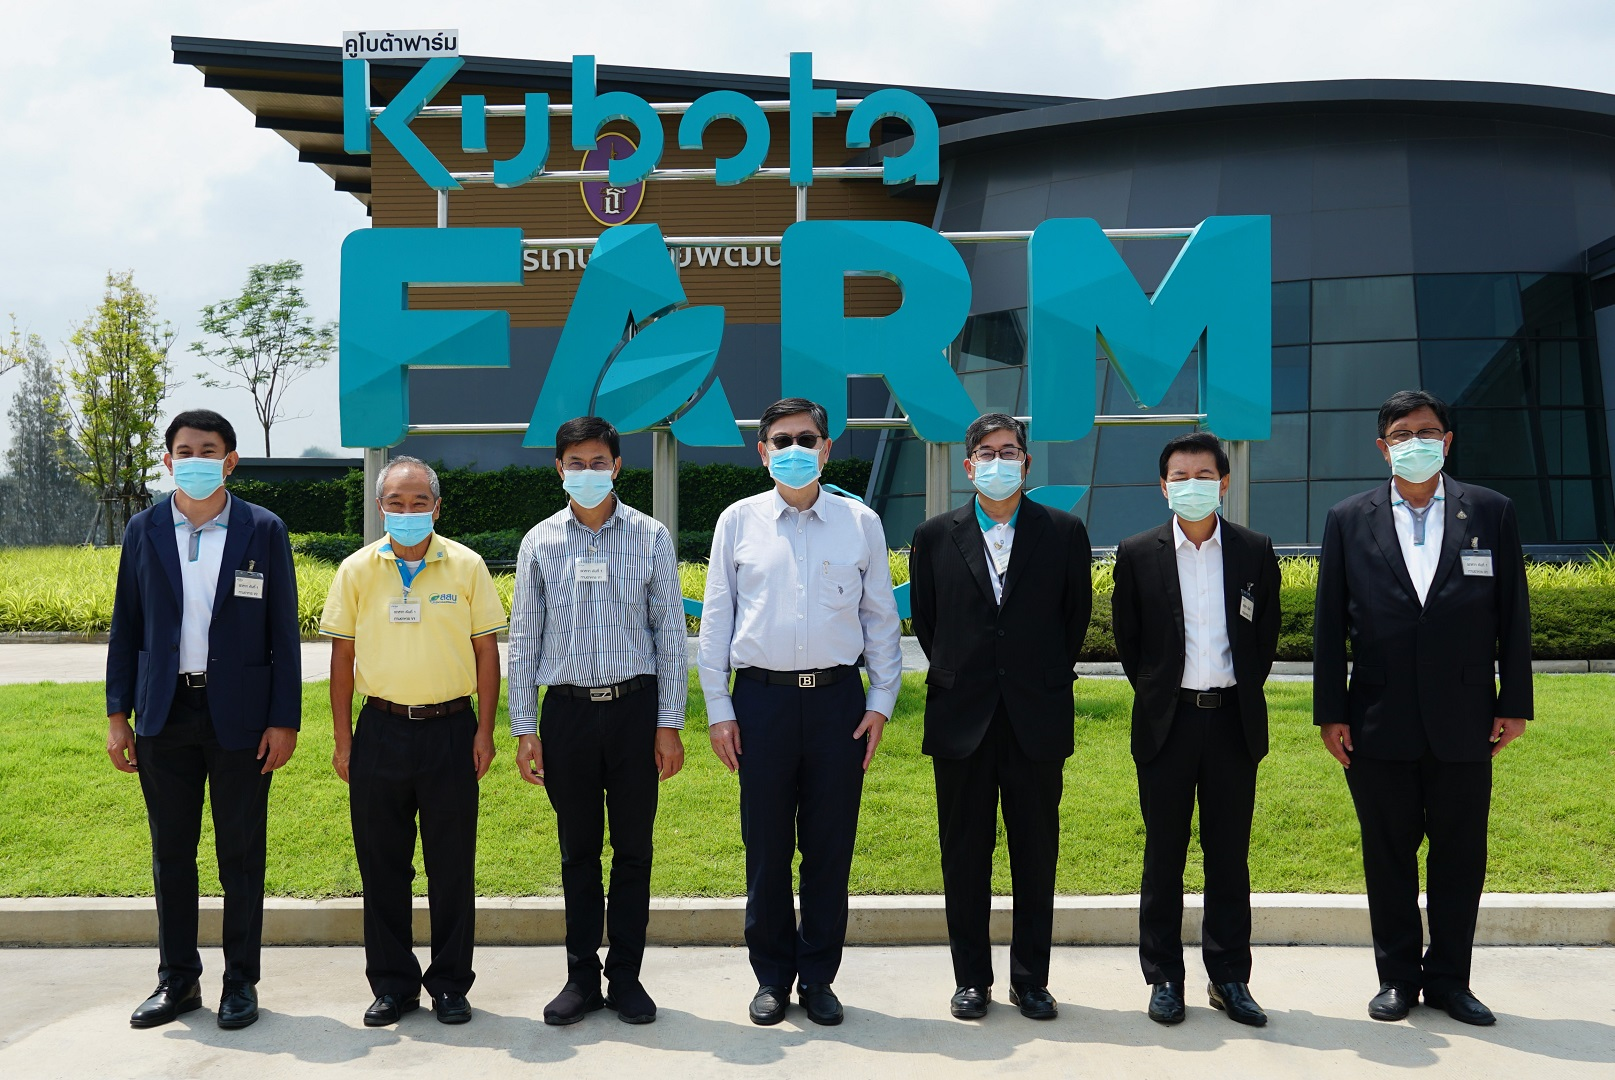 The Minister of Higher Education Science Research and Innovation visited KUBOTA FARM